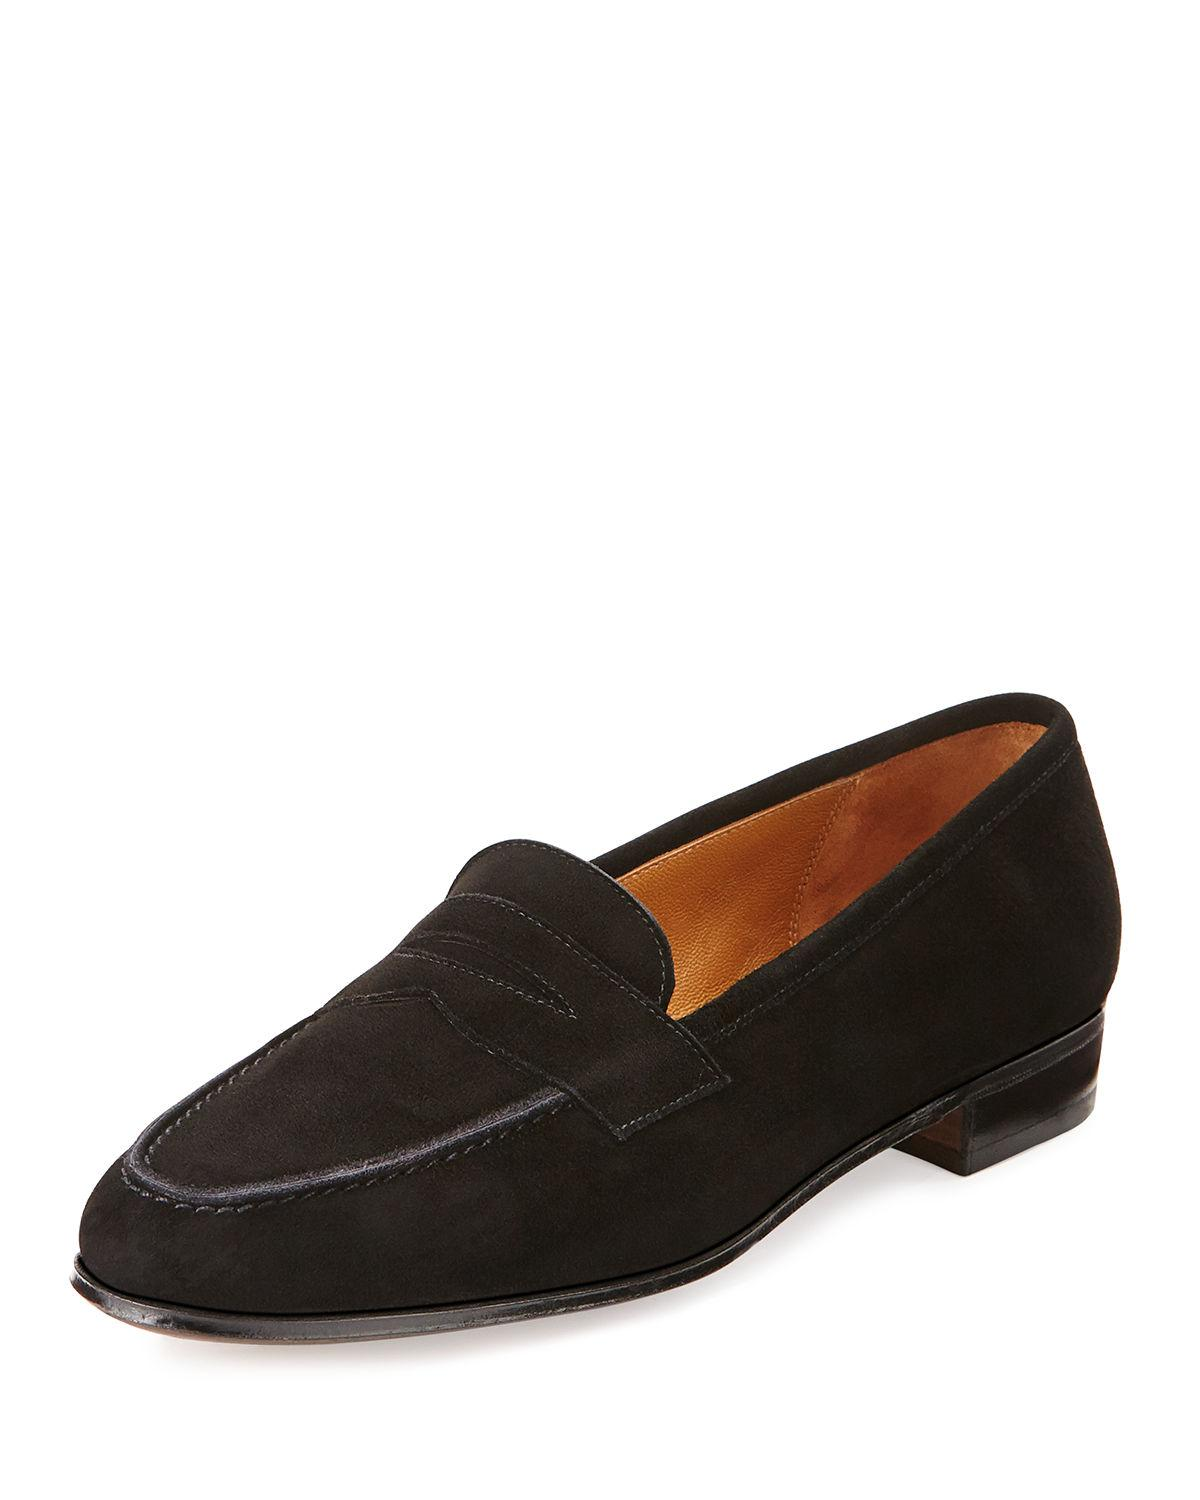 689be048cdf Lyst - Gravati Suede Penny Loafer in Black - Save 65%